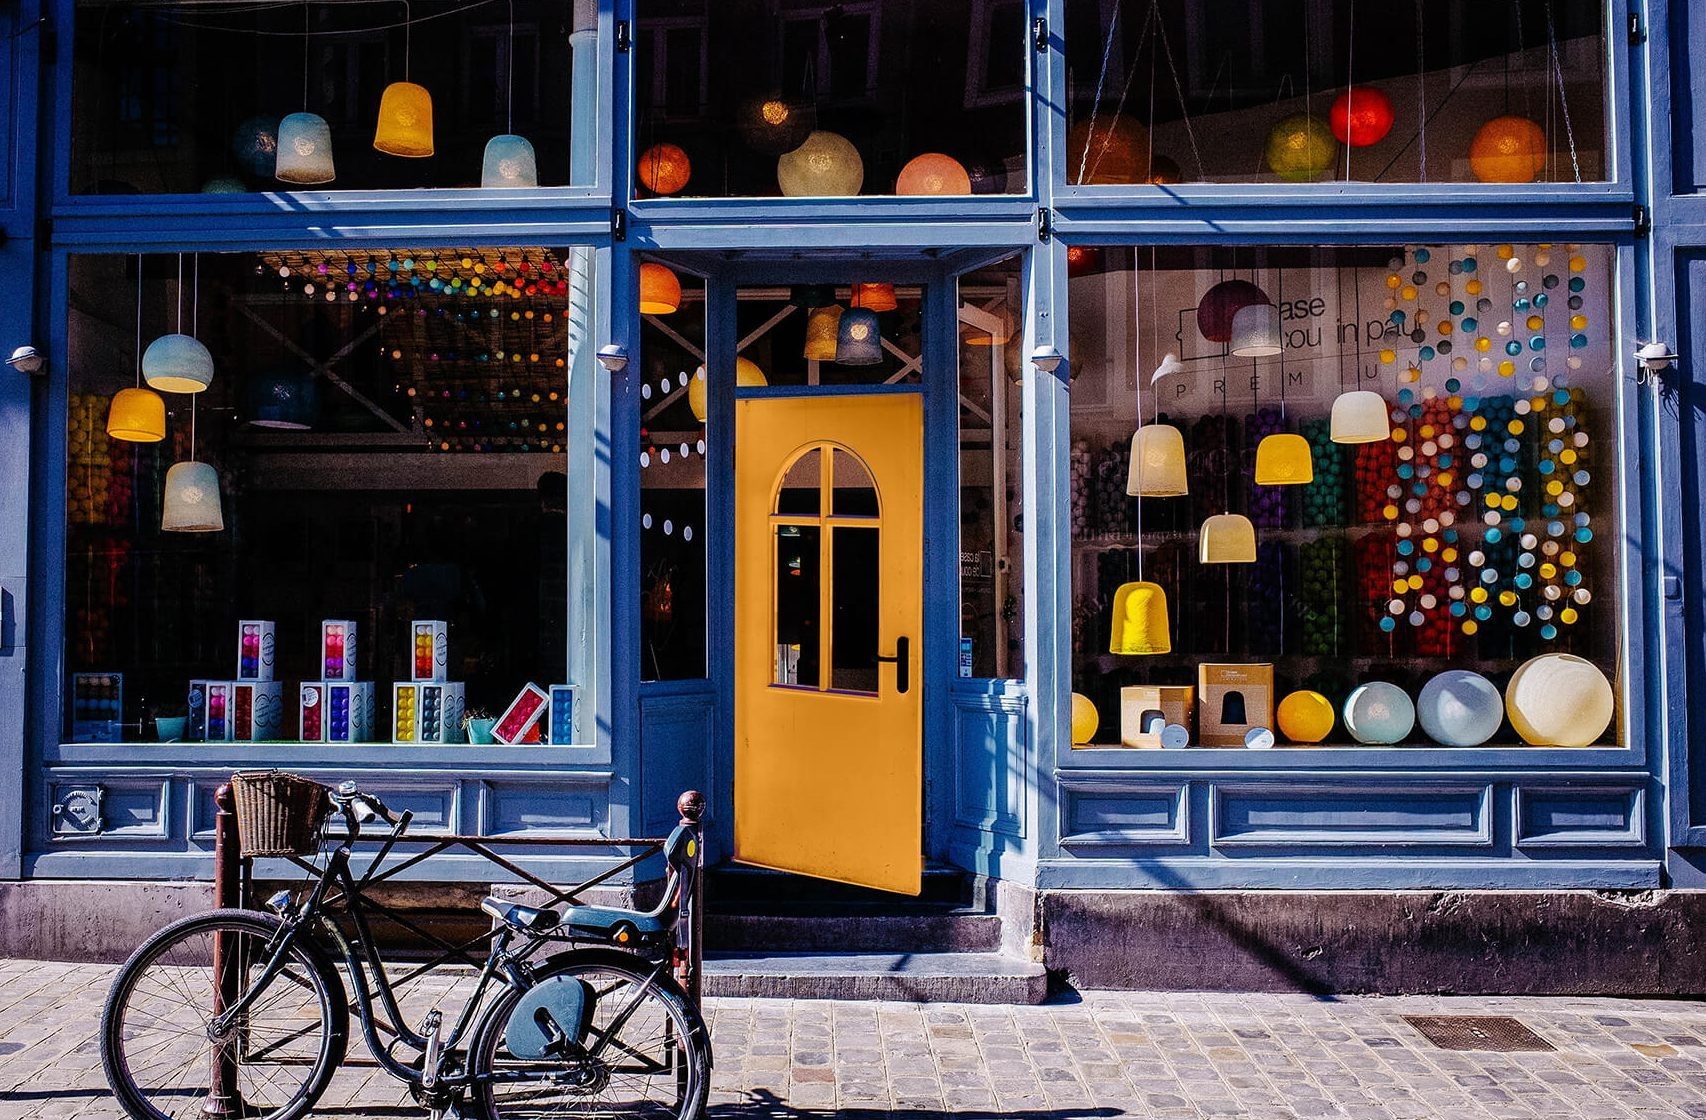 Shop front with colourful window display